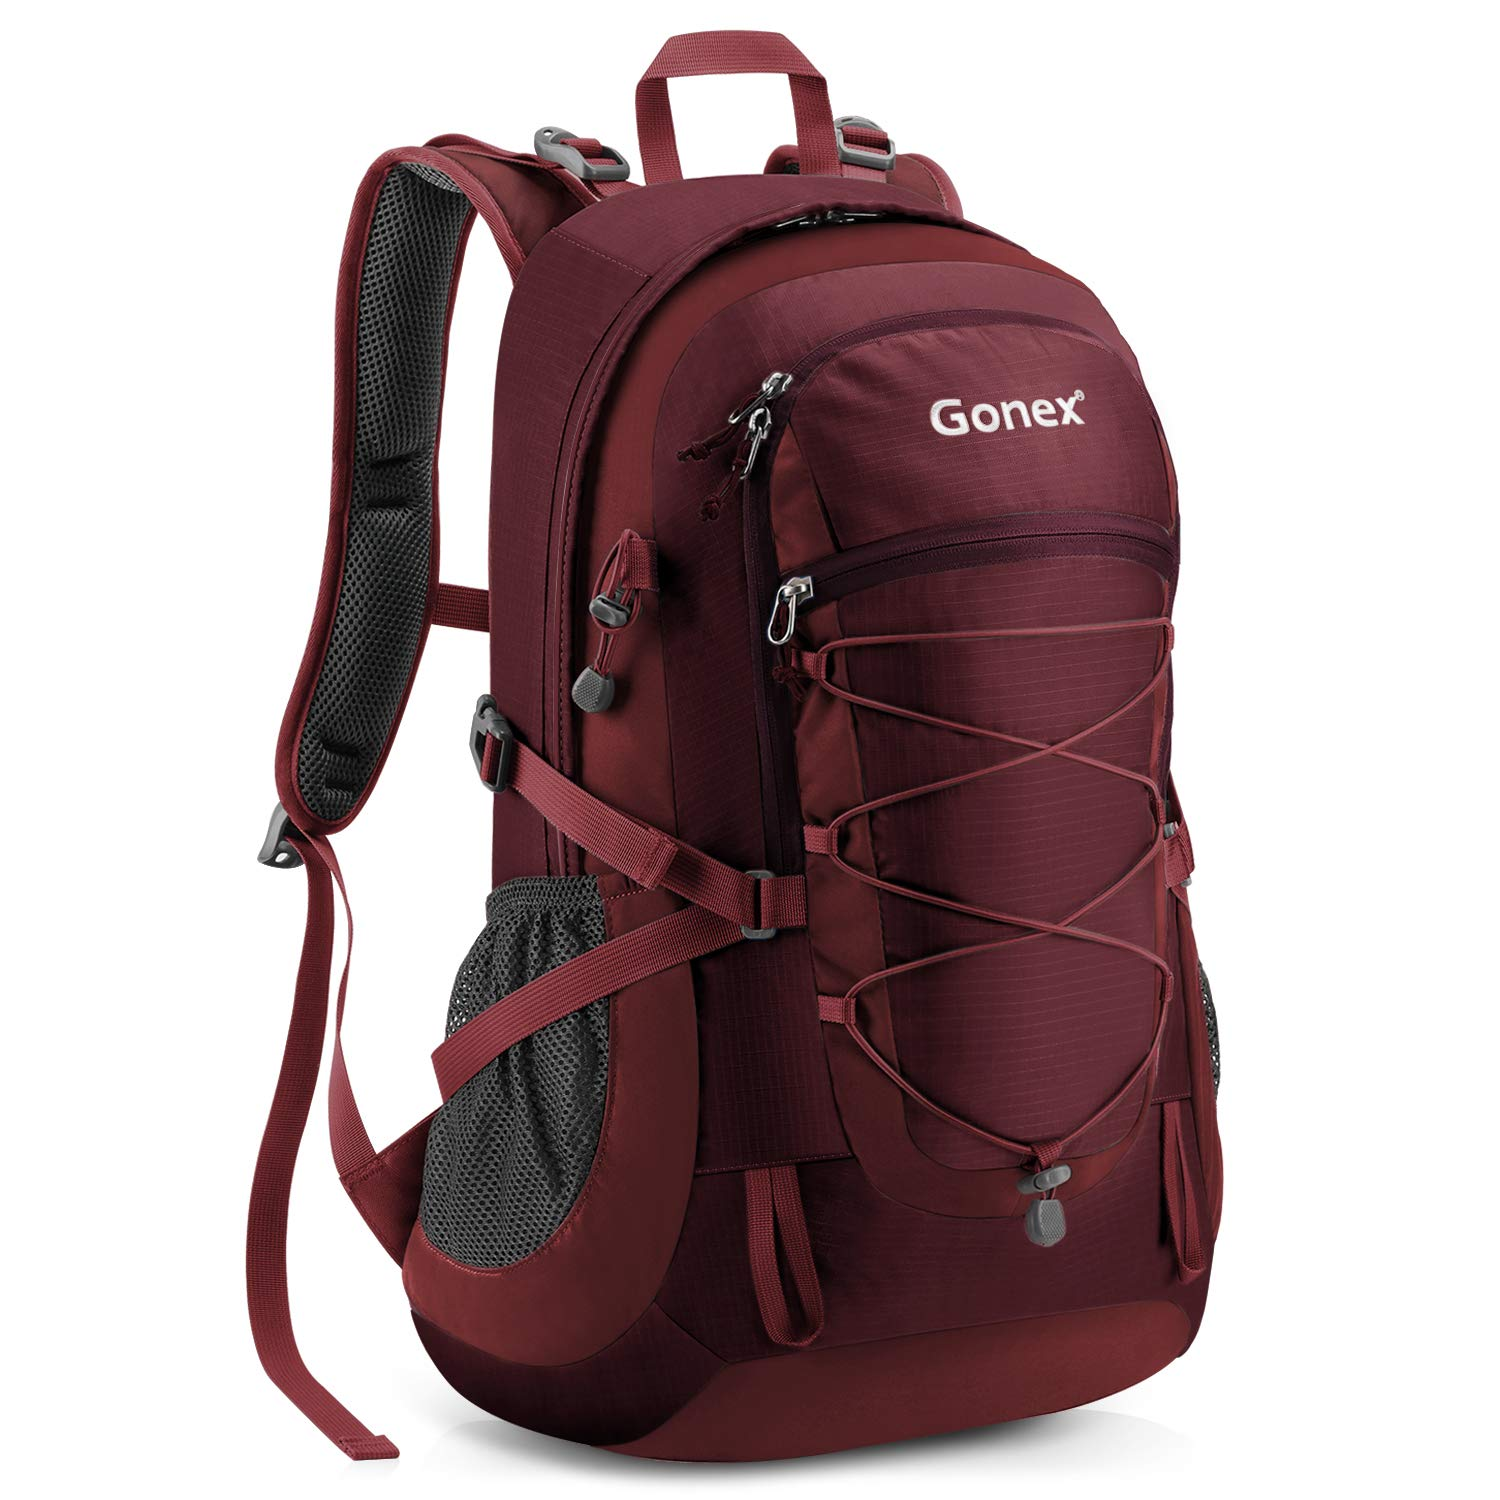 Gonex Updated 35L Hiking Backpack, Camping Outdoor Trekking Daypack, Waterproof and Backpack Cover Included (Garnet Red)